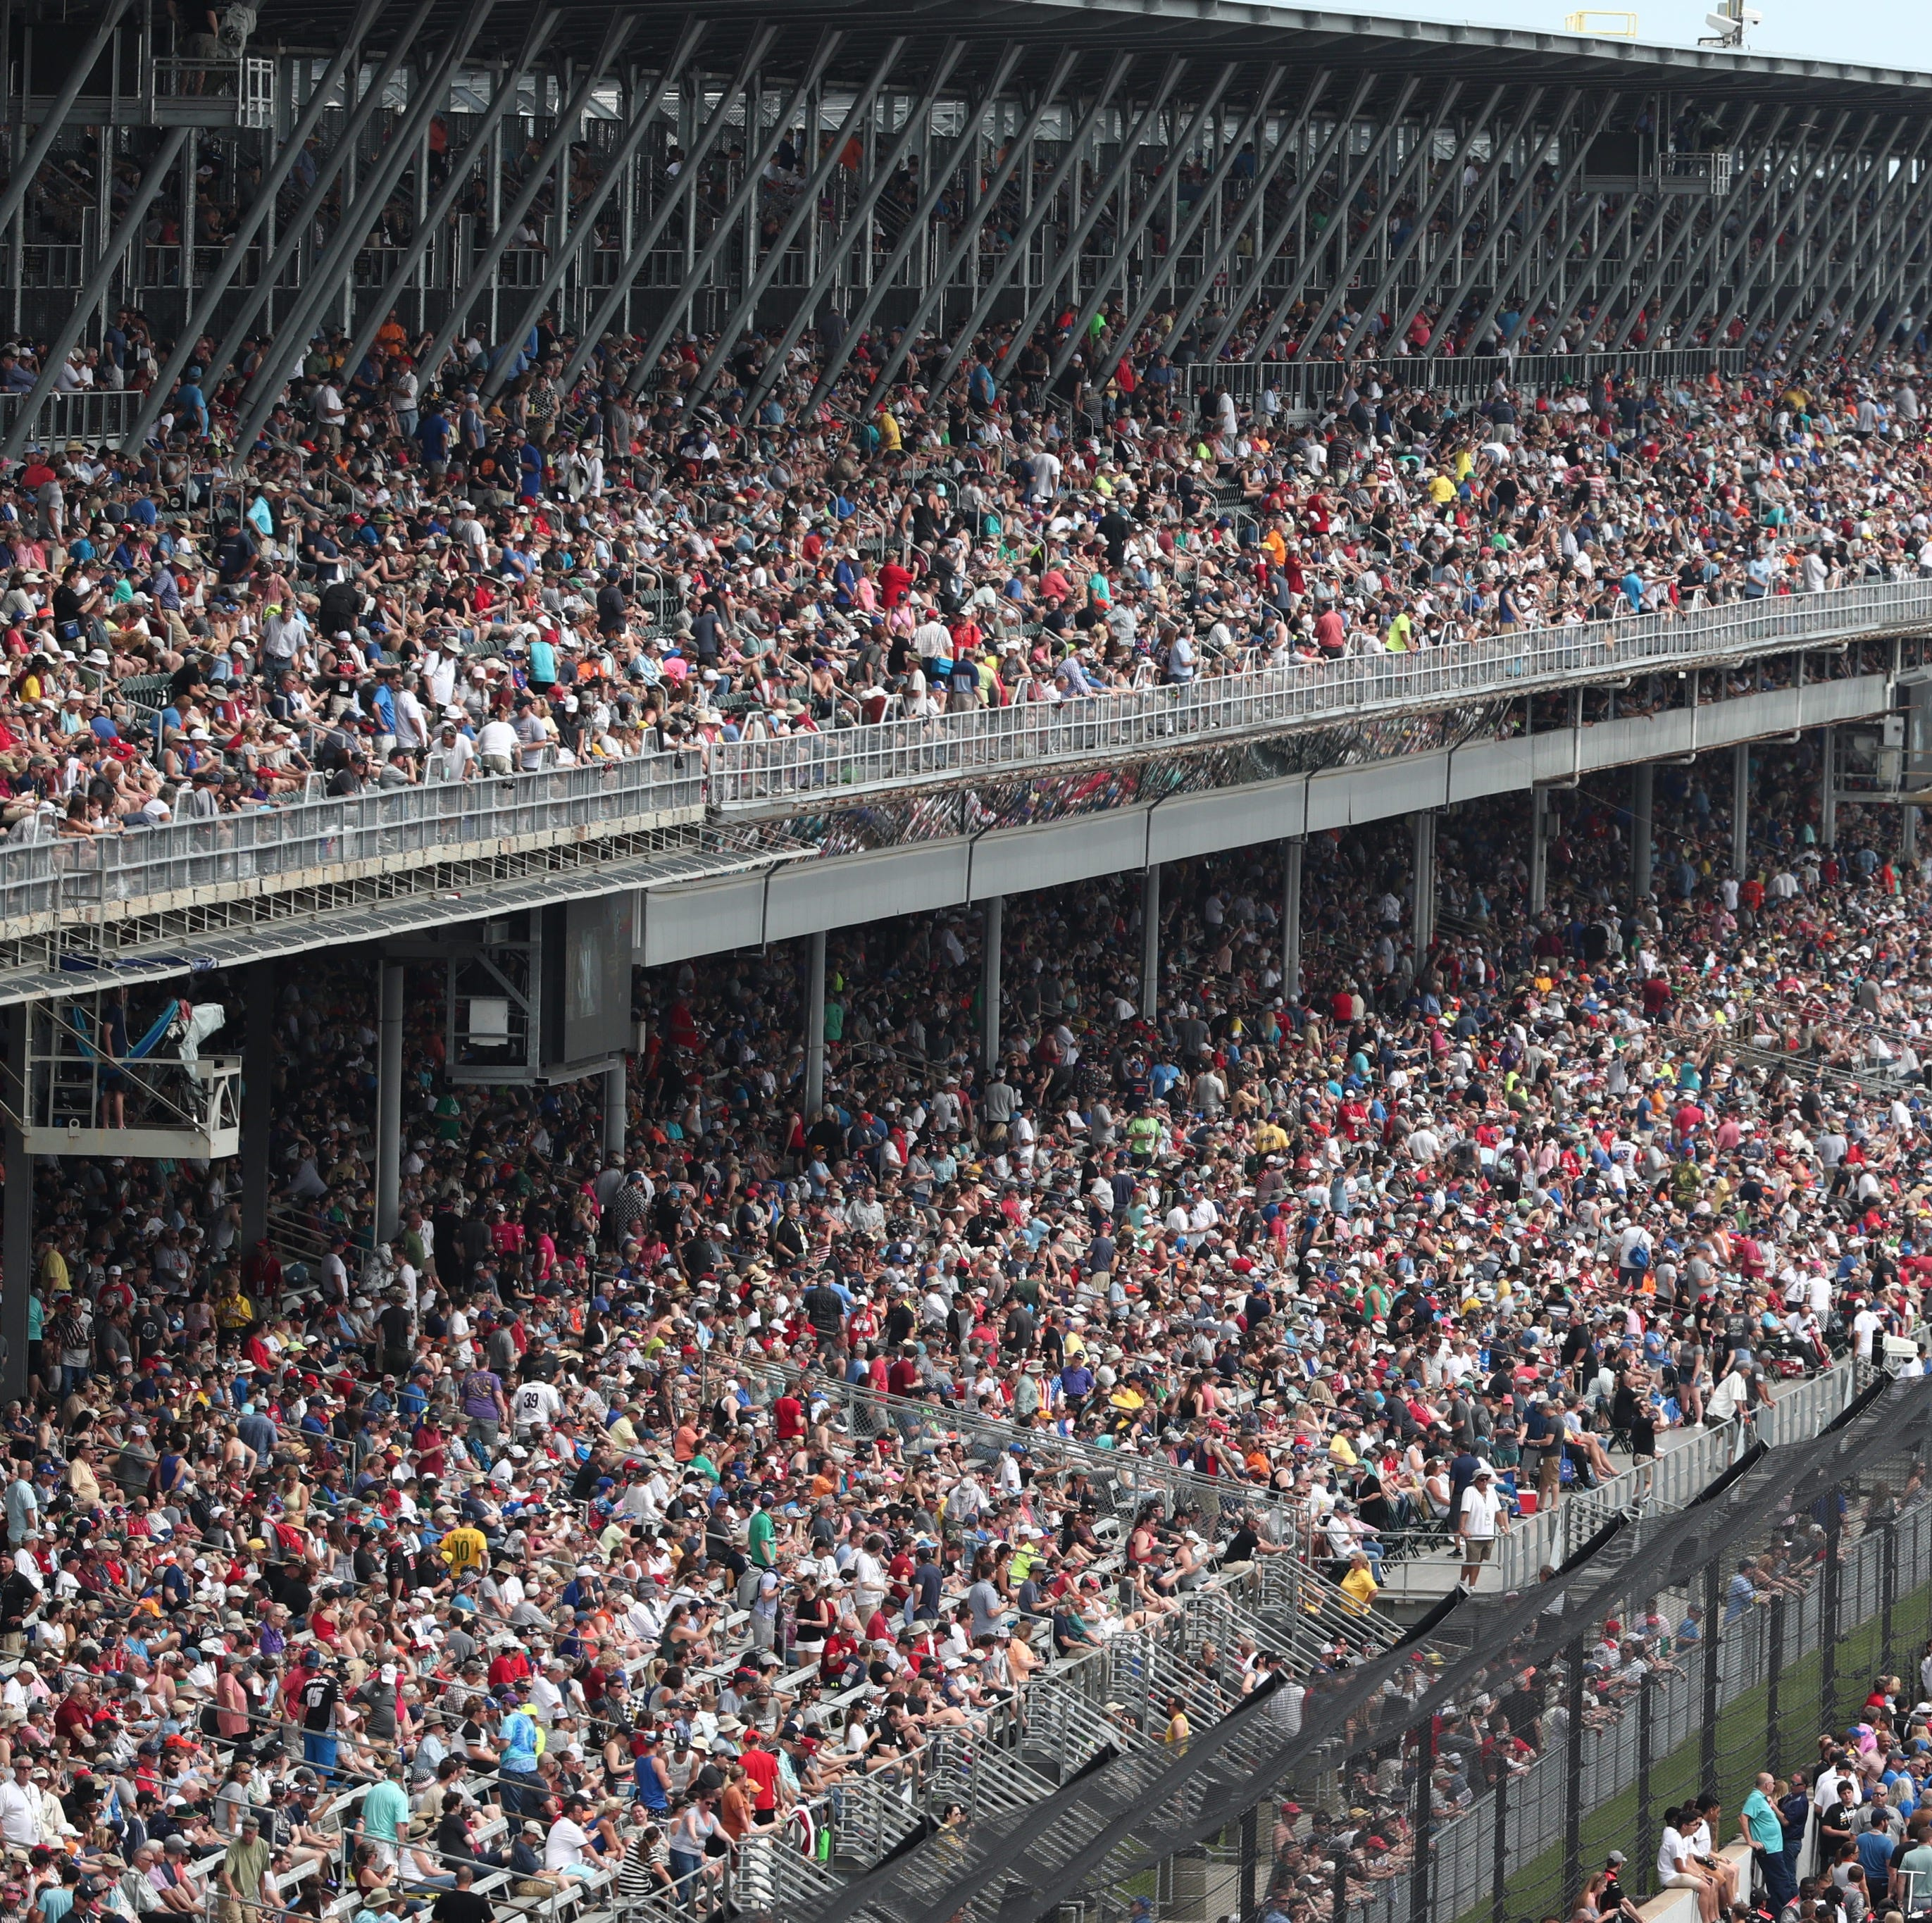 IMS President Doug Boles on Indy 500 attendance: 'Down from where we were in 2018'